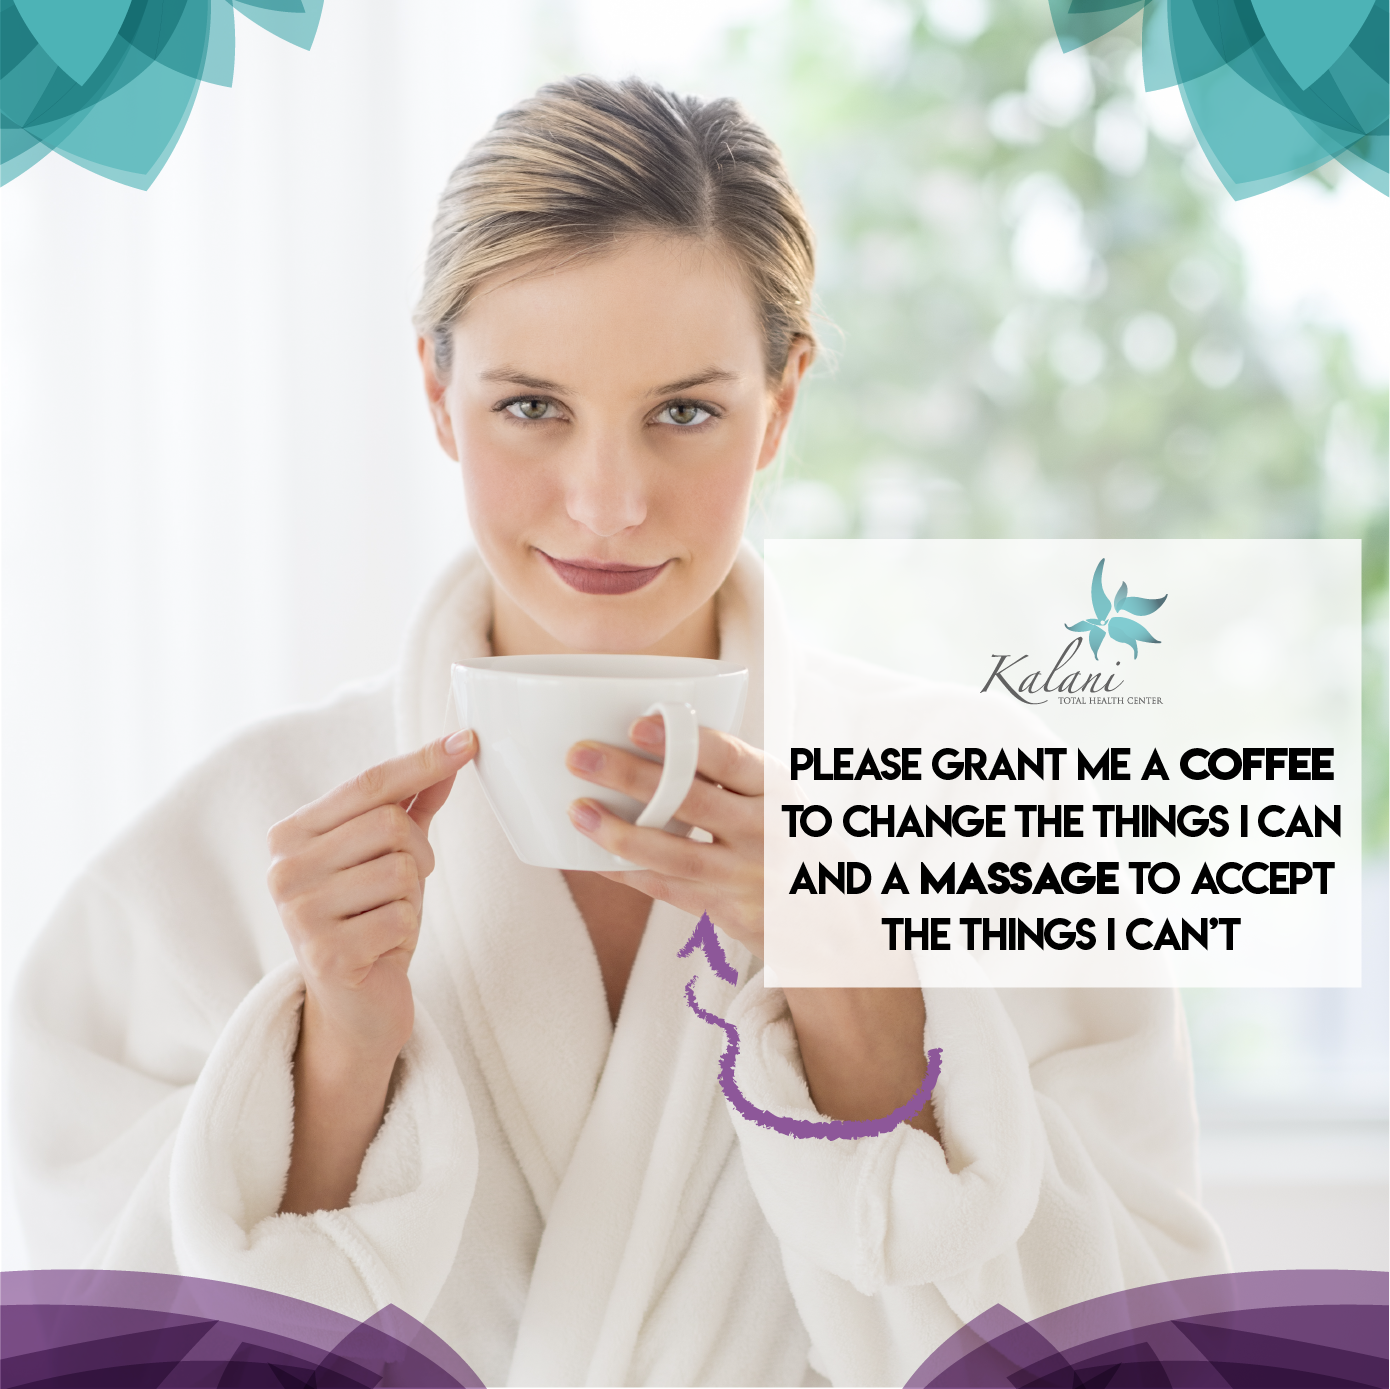 Sometimes All We Need Is A Coffee And A Good Massage To Help You Finish Your Week Like A Champ Chiropractic Kalanitotal Massage Therapy Good Massage Massage